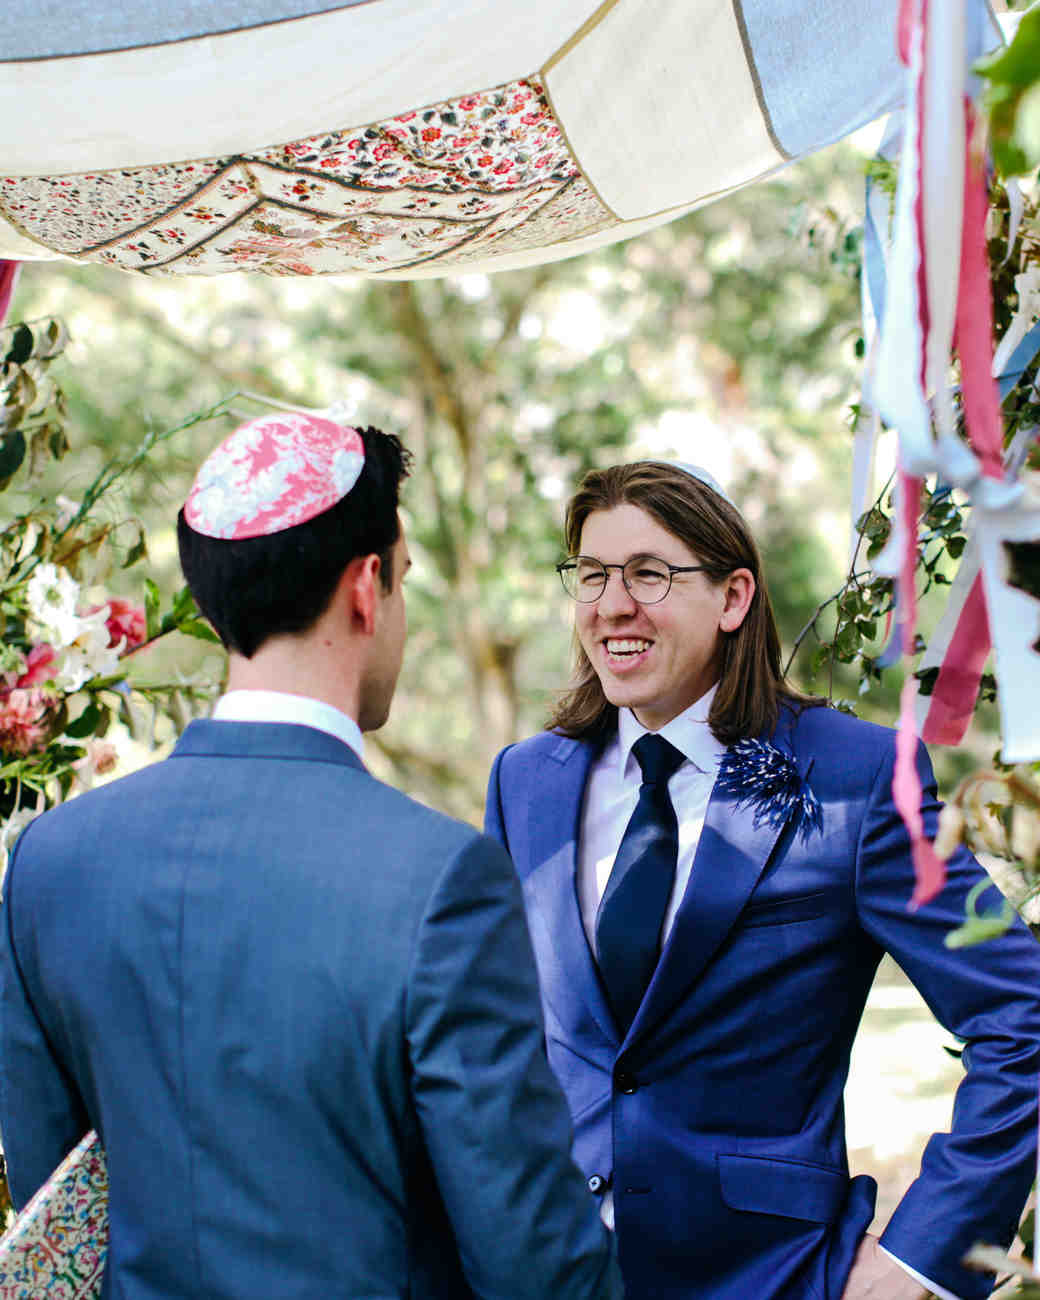 red and blue floral matching yarmulke groom officiant outdoors